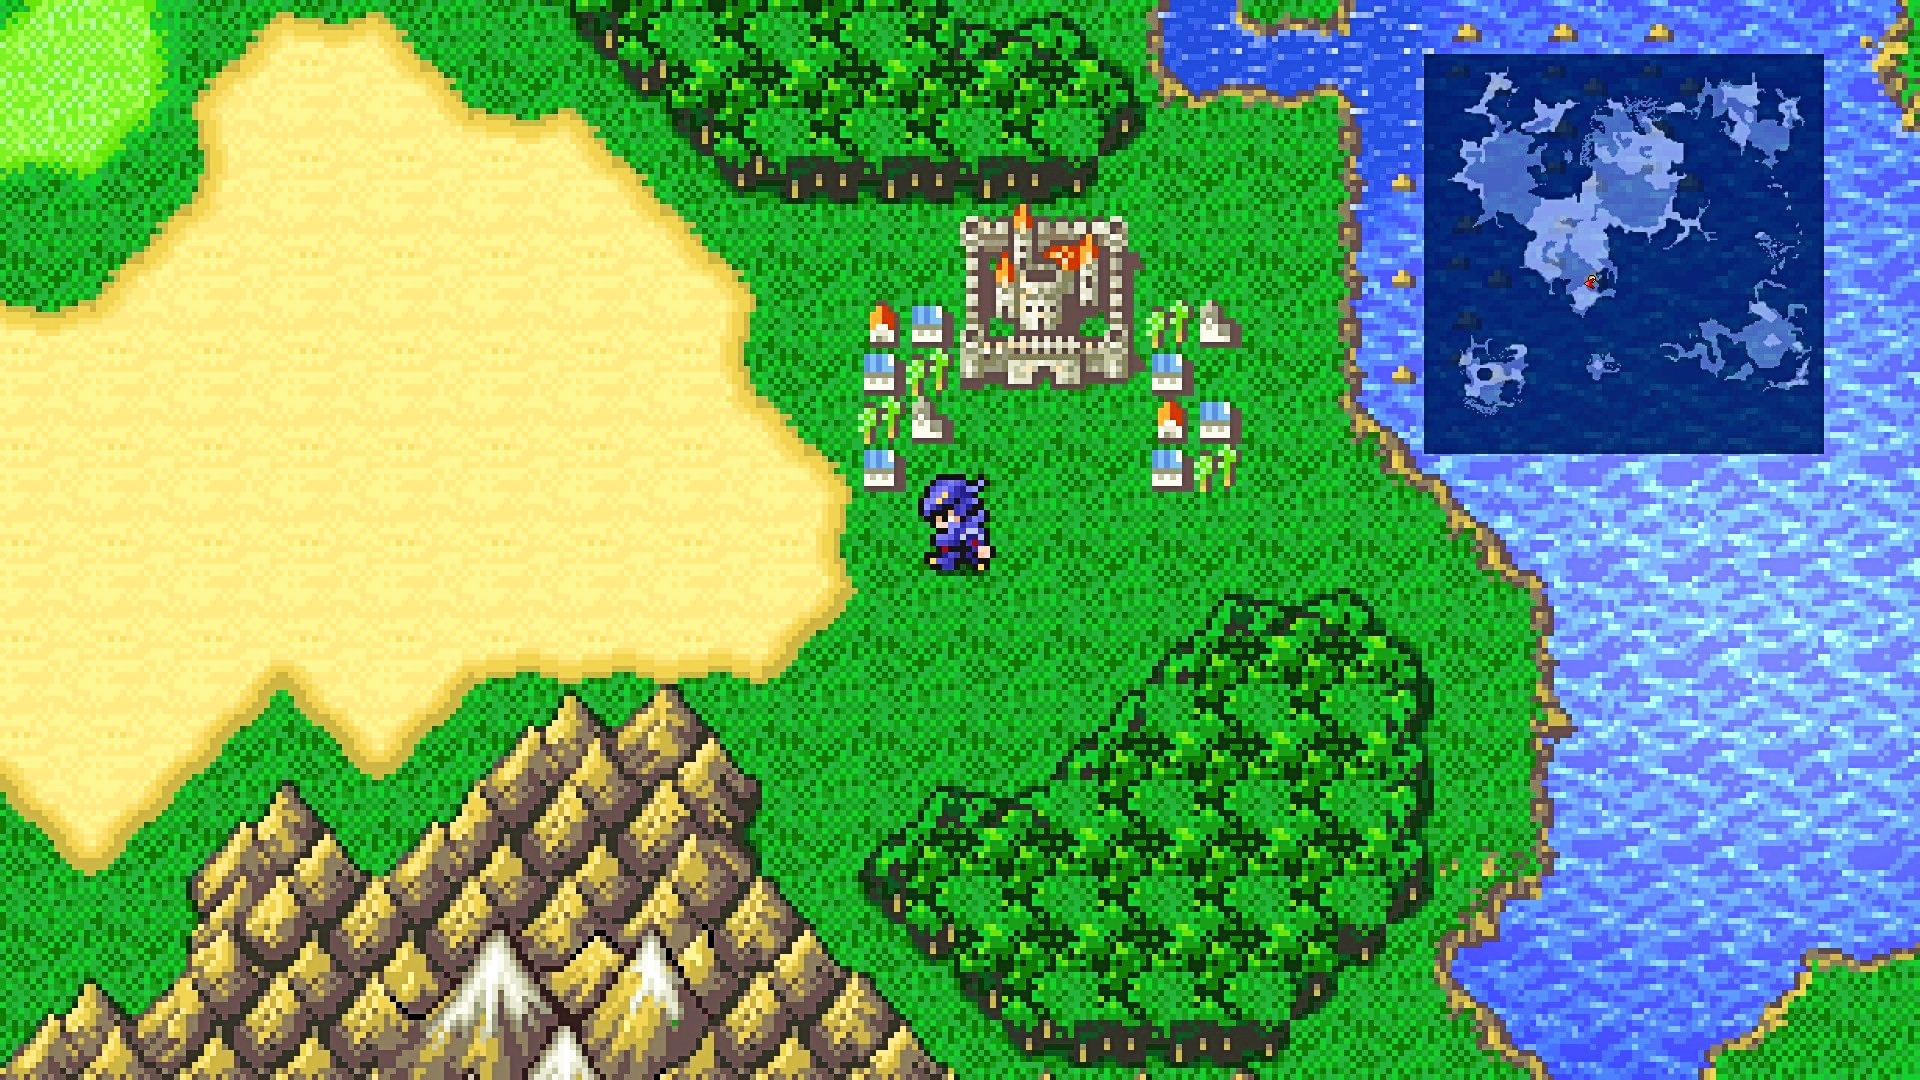 Final Fantasy 4's pixel remaster is out next month